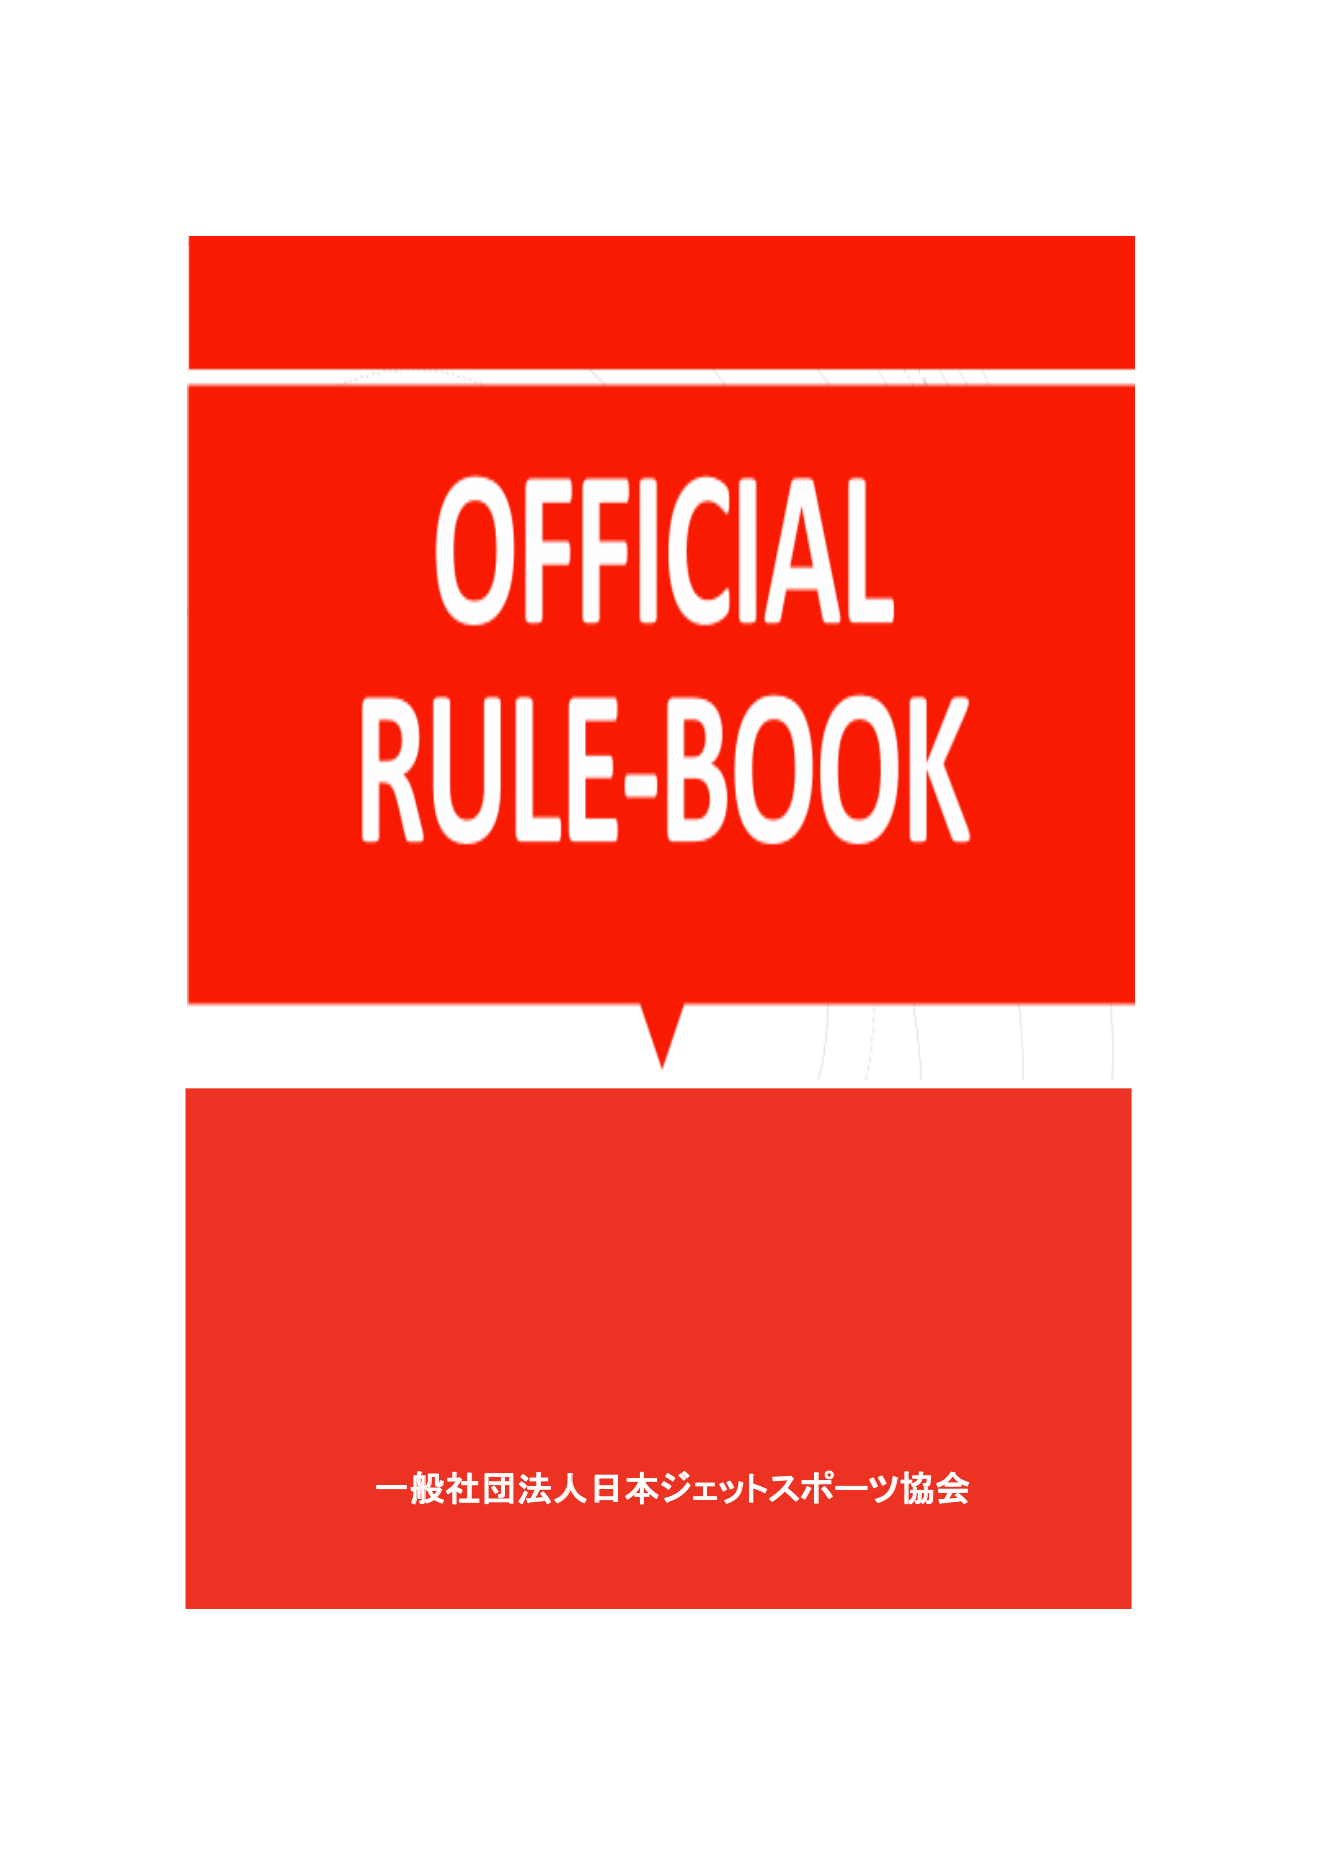 OFFICIAL RULE BOOK